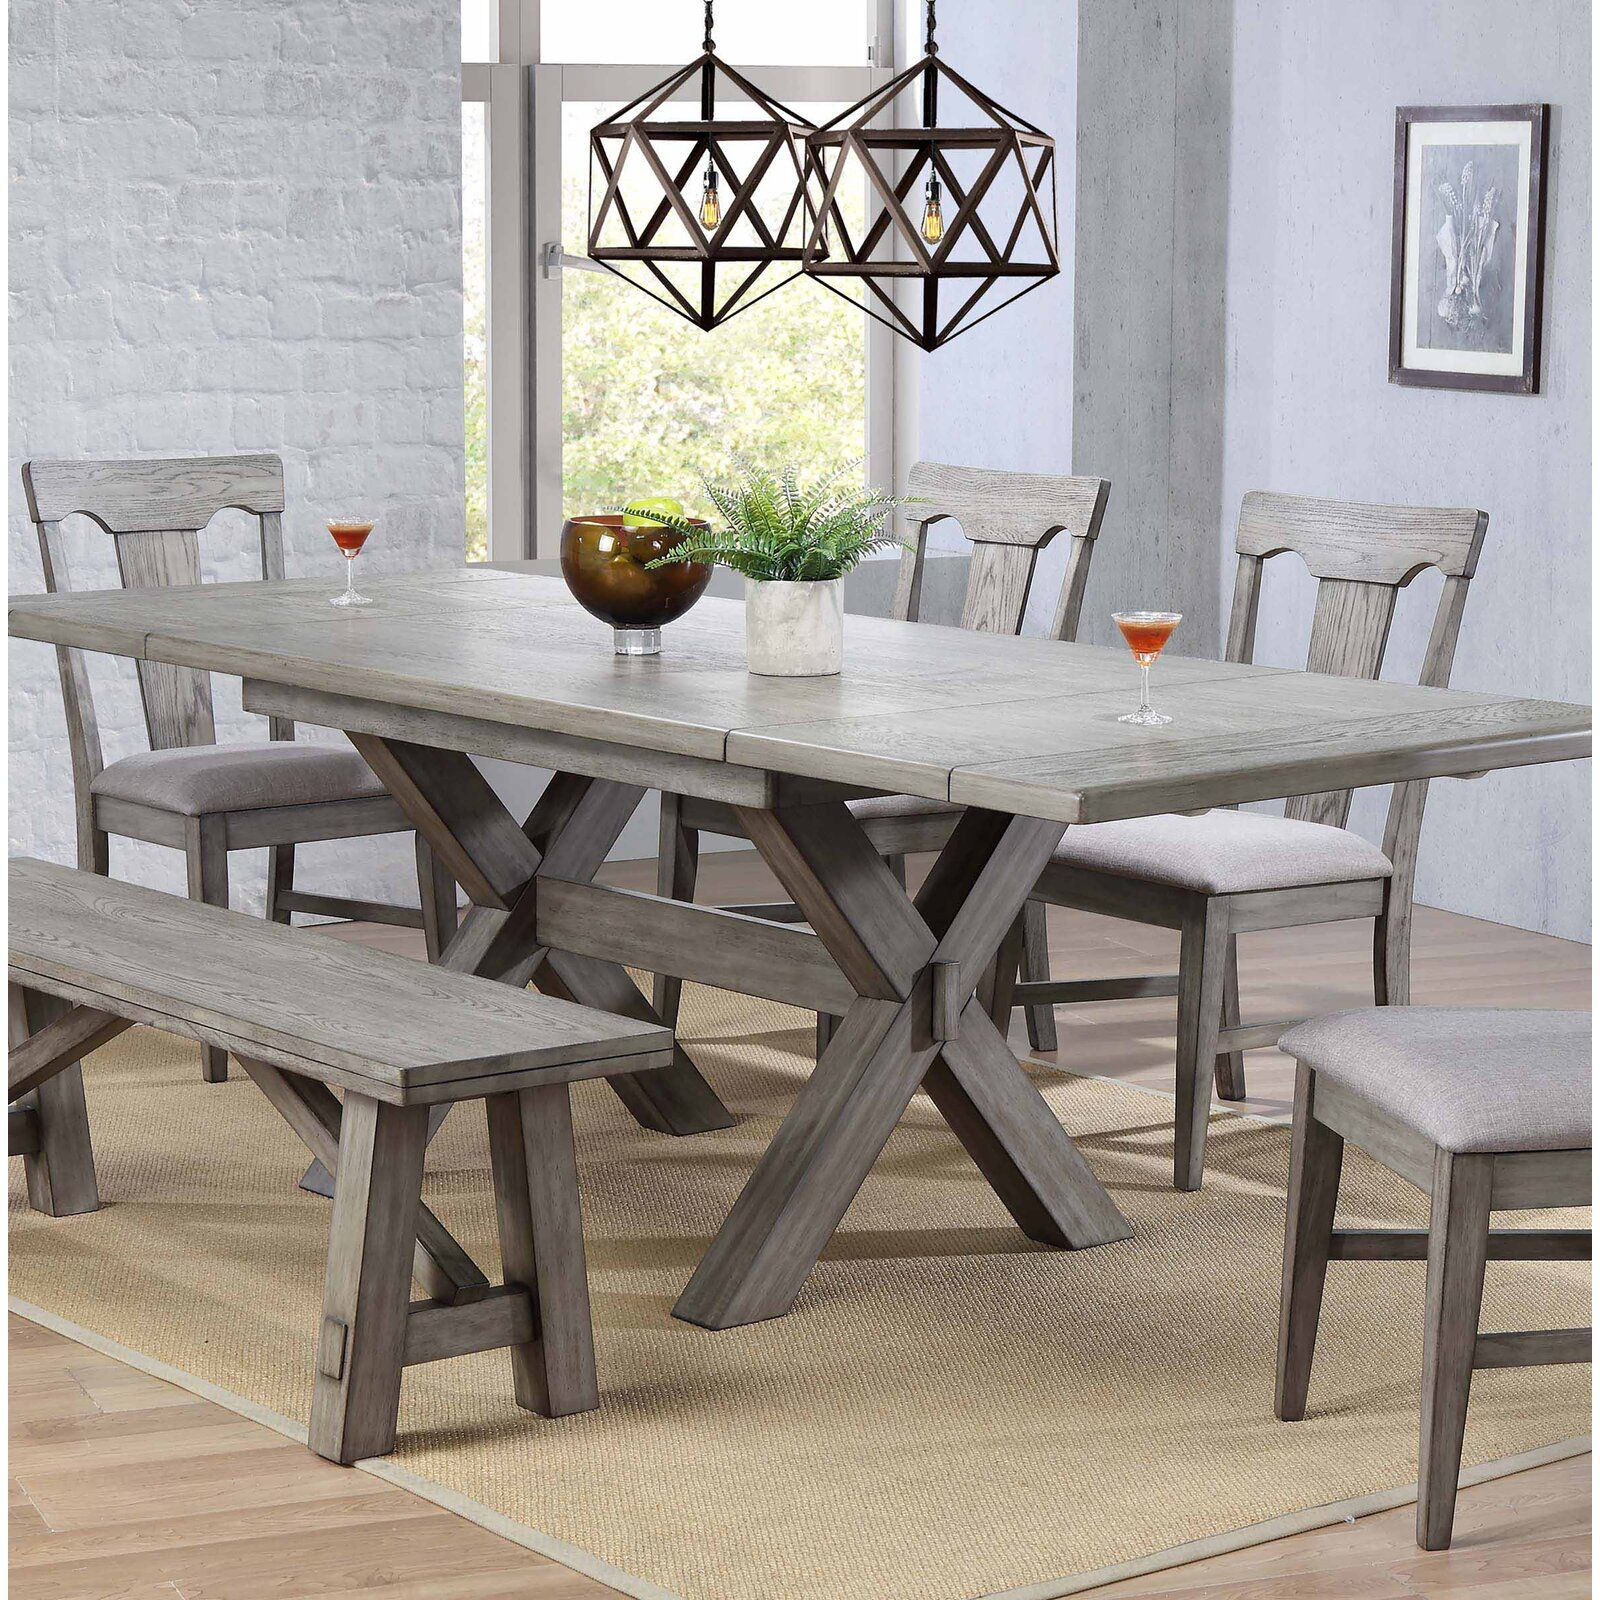 Ophelia Co Vergara Trestle Table Wayfair Dining Table In Kitchen Dining Room Table Solid Wood Dining Table